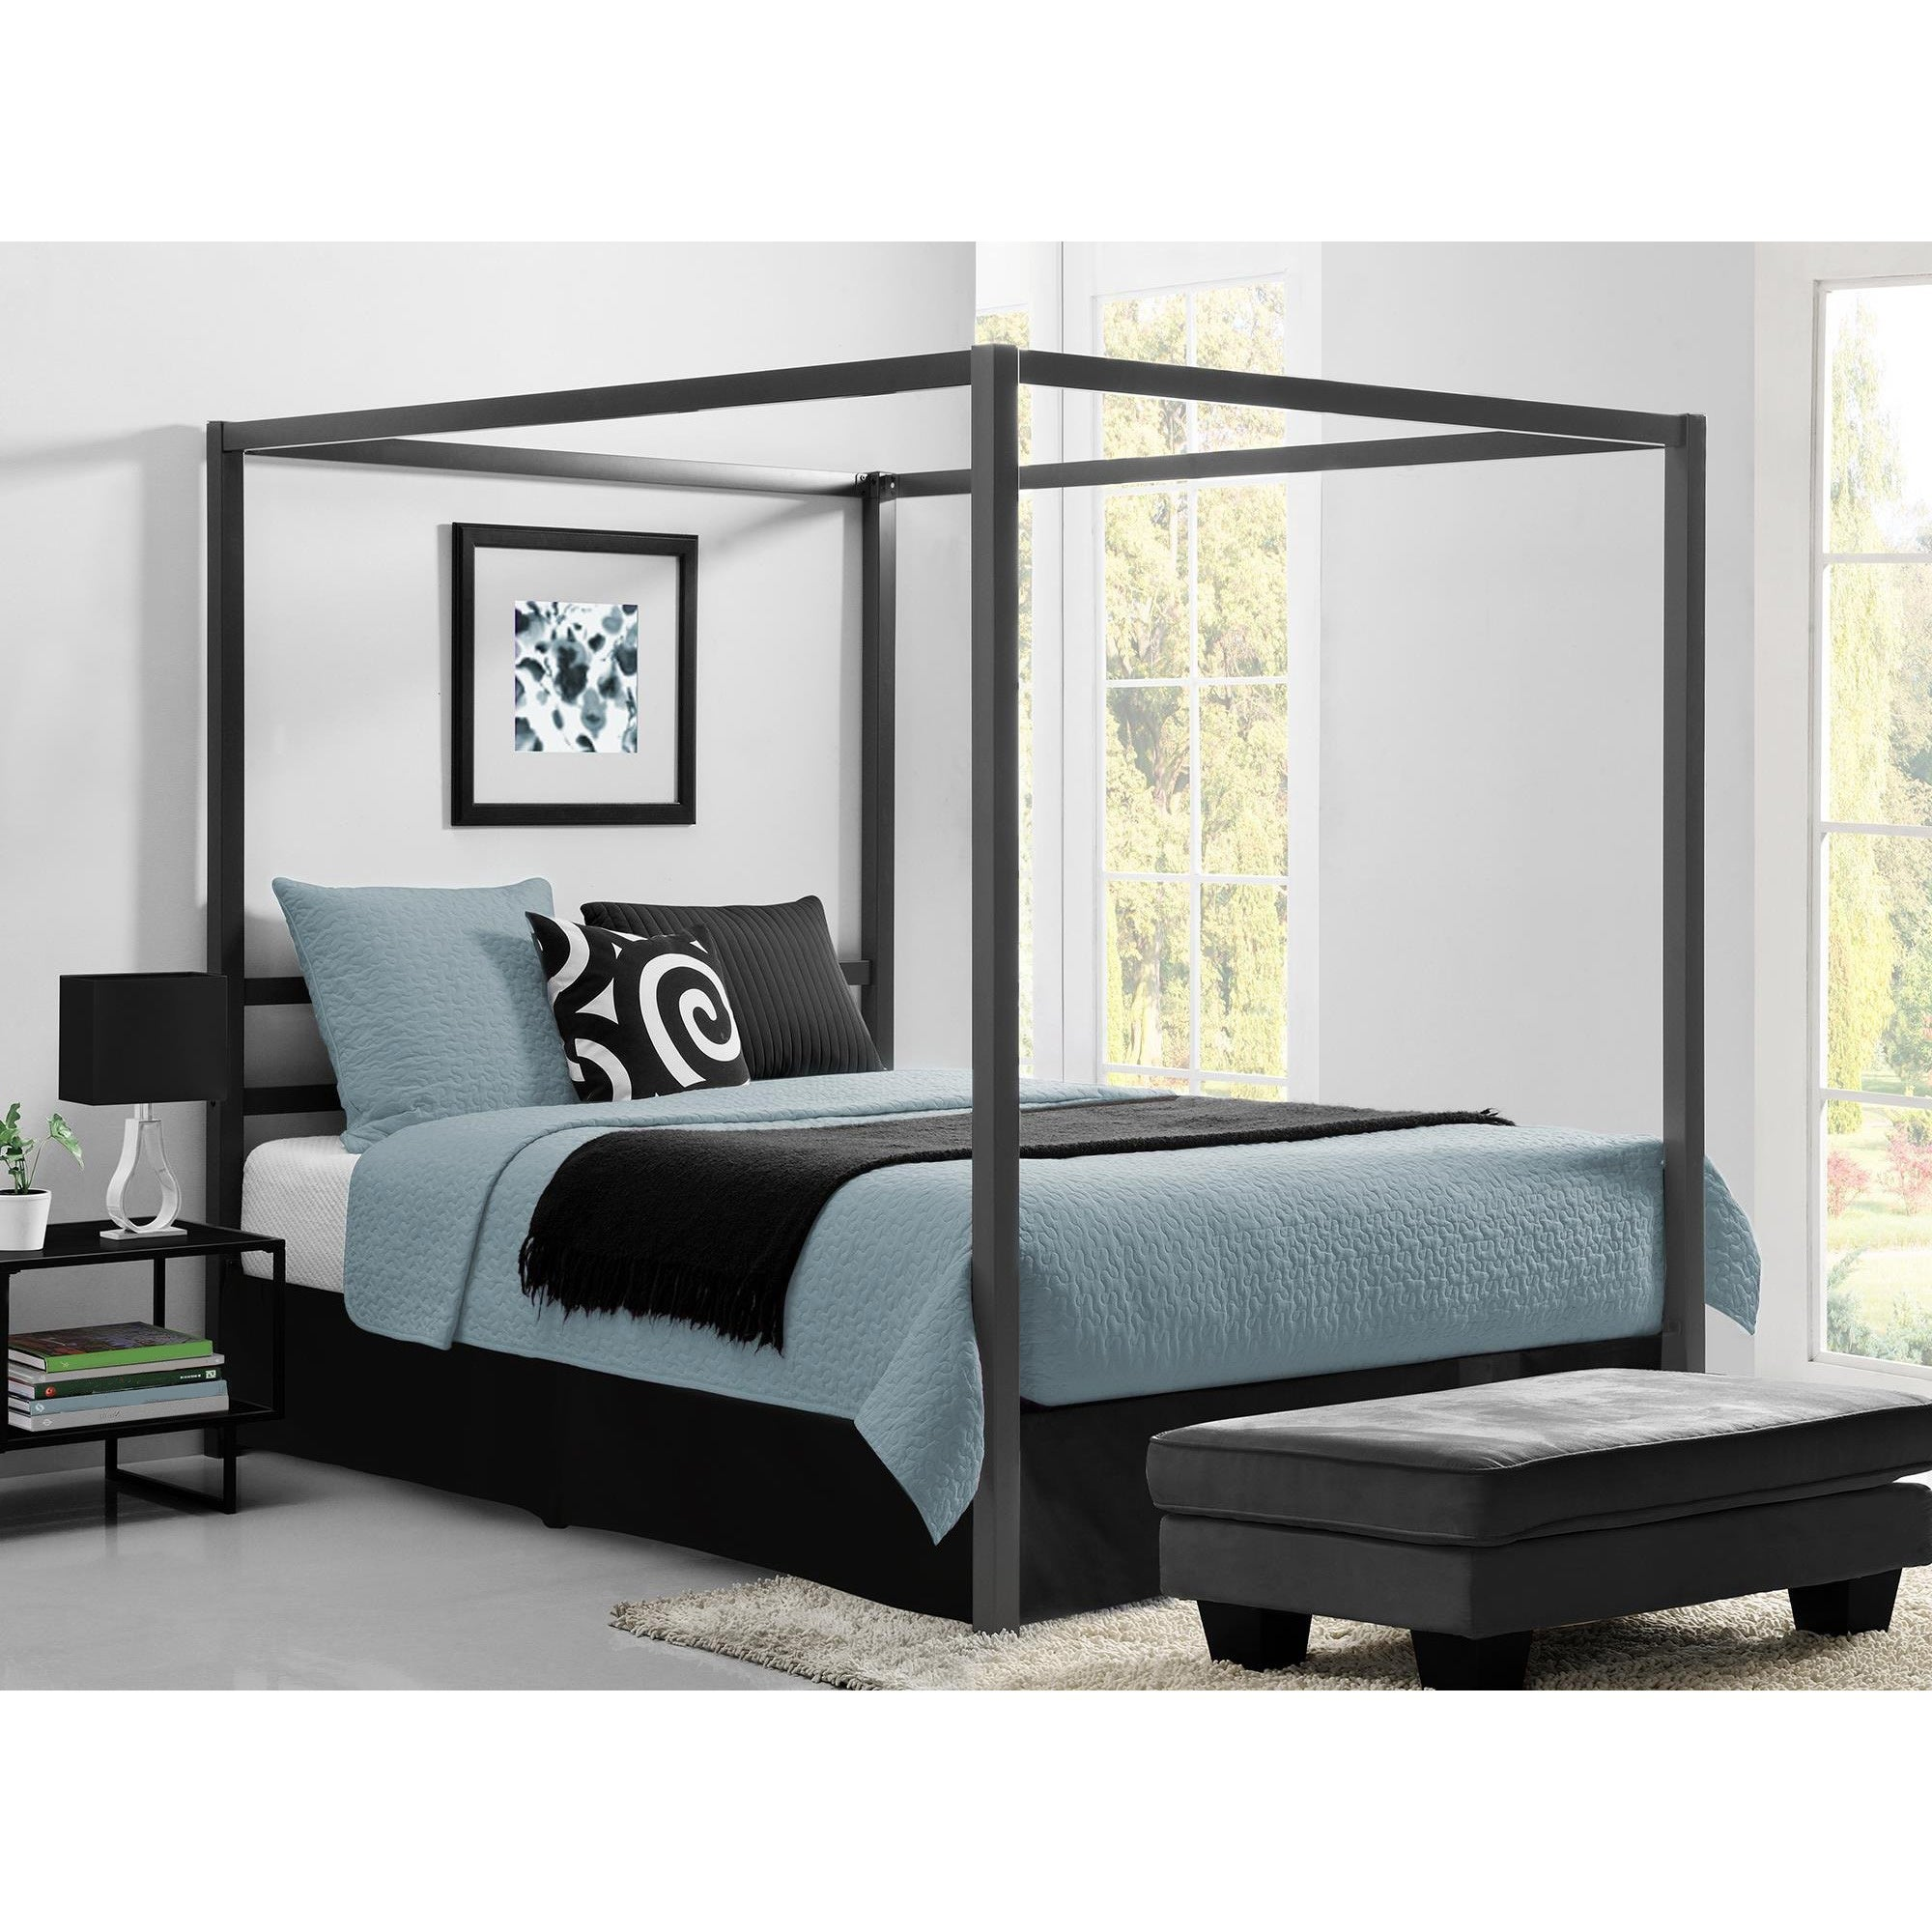 Canopy Bed.Shop Avenue Greene Gia Grey Metal Canopy Bed Overstock 20340116